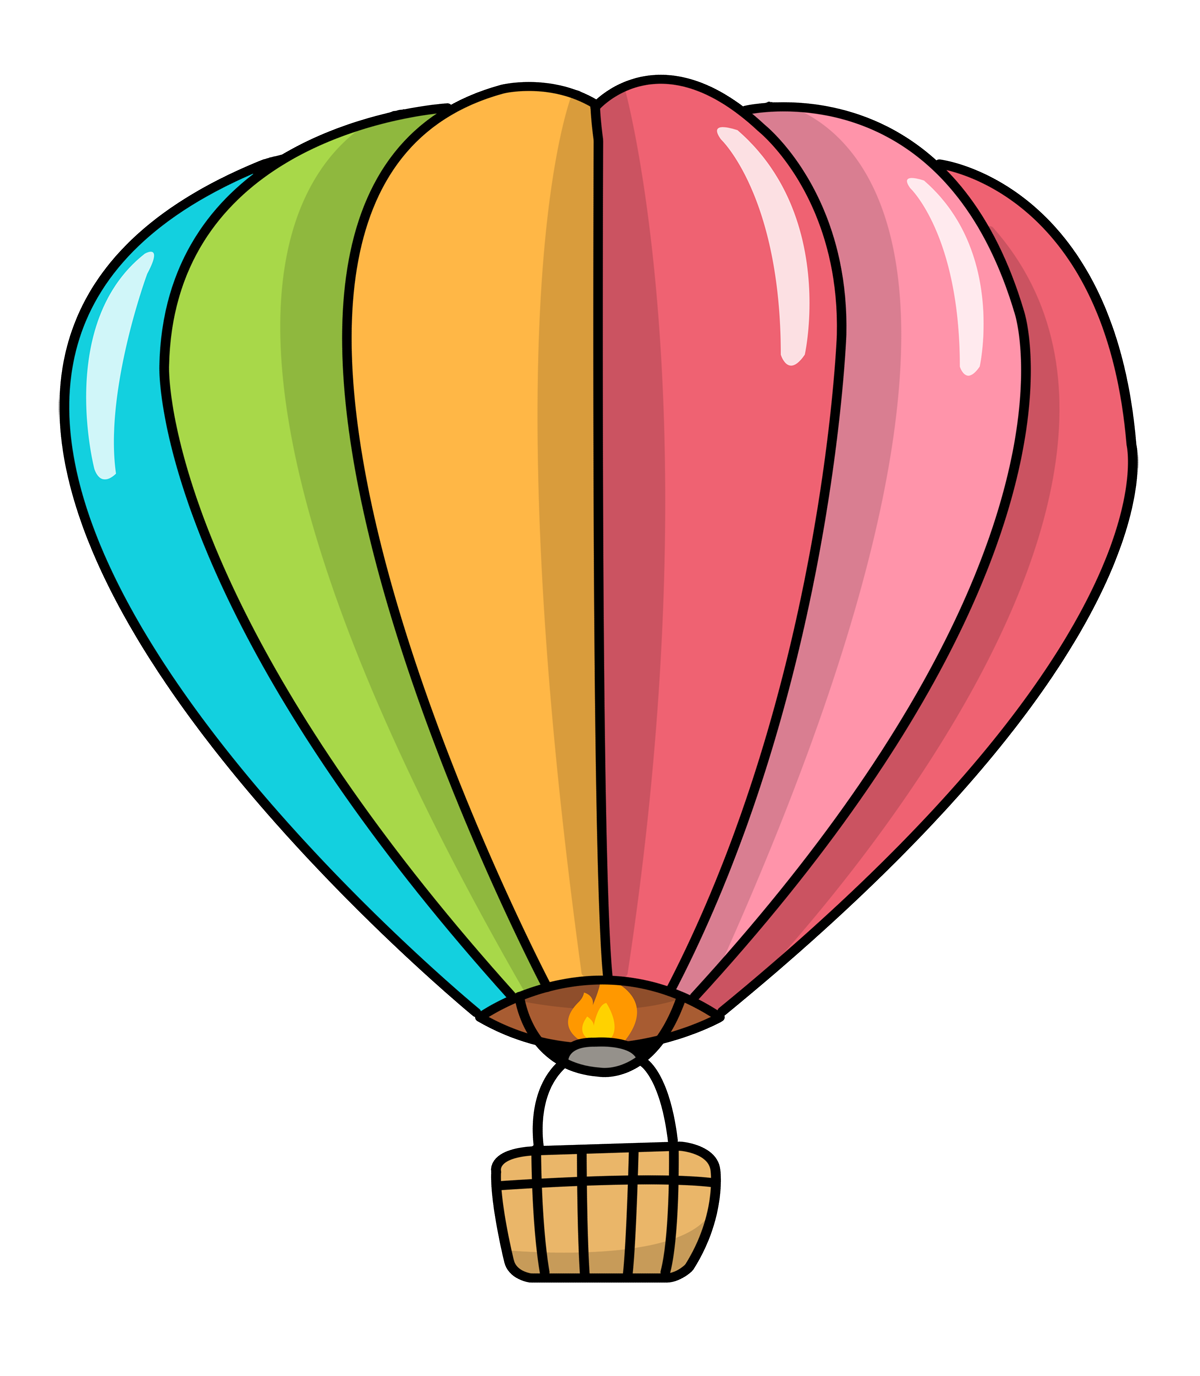 Colorful Hot Air Balloon Clipart   Clipart Panda - Free Clipart Images